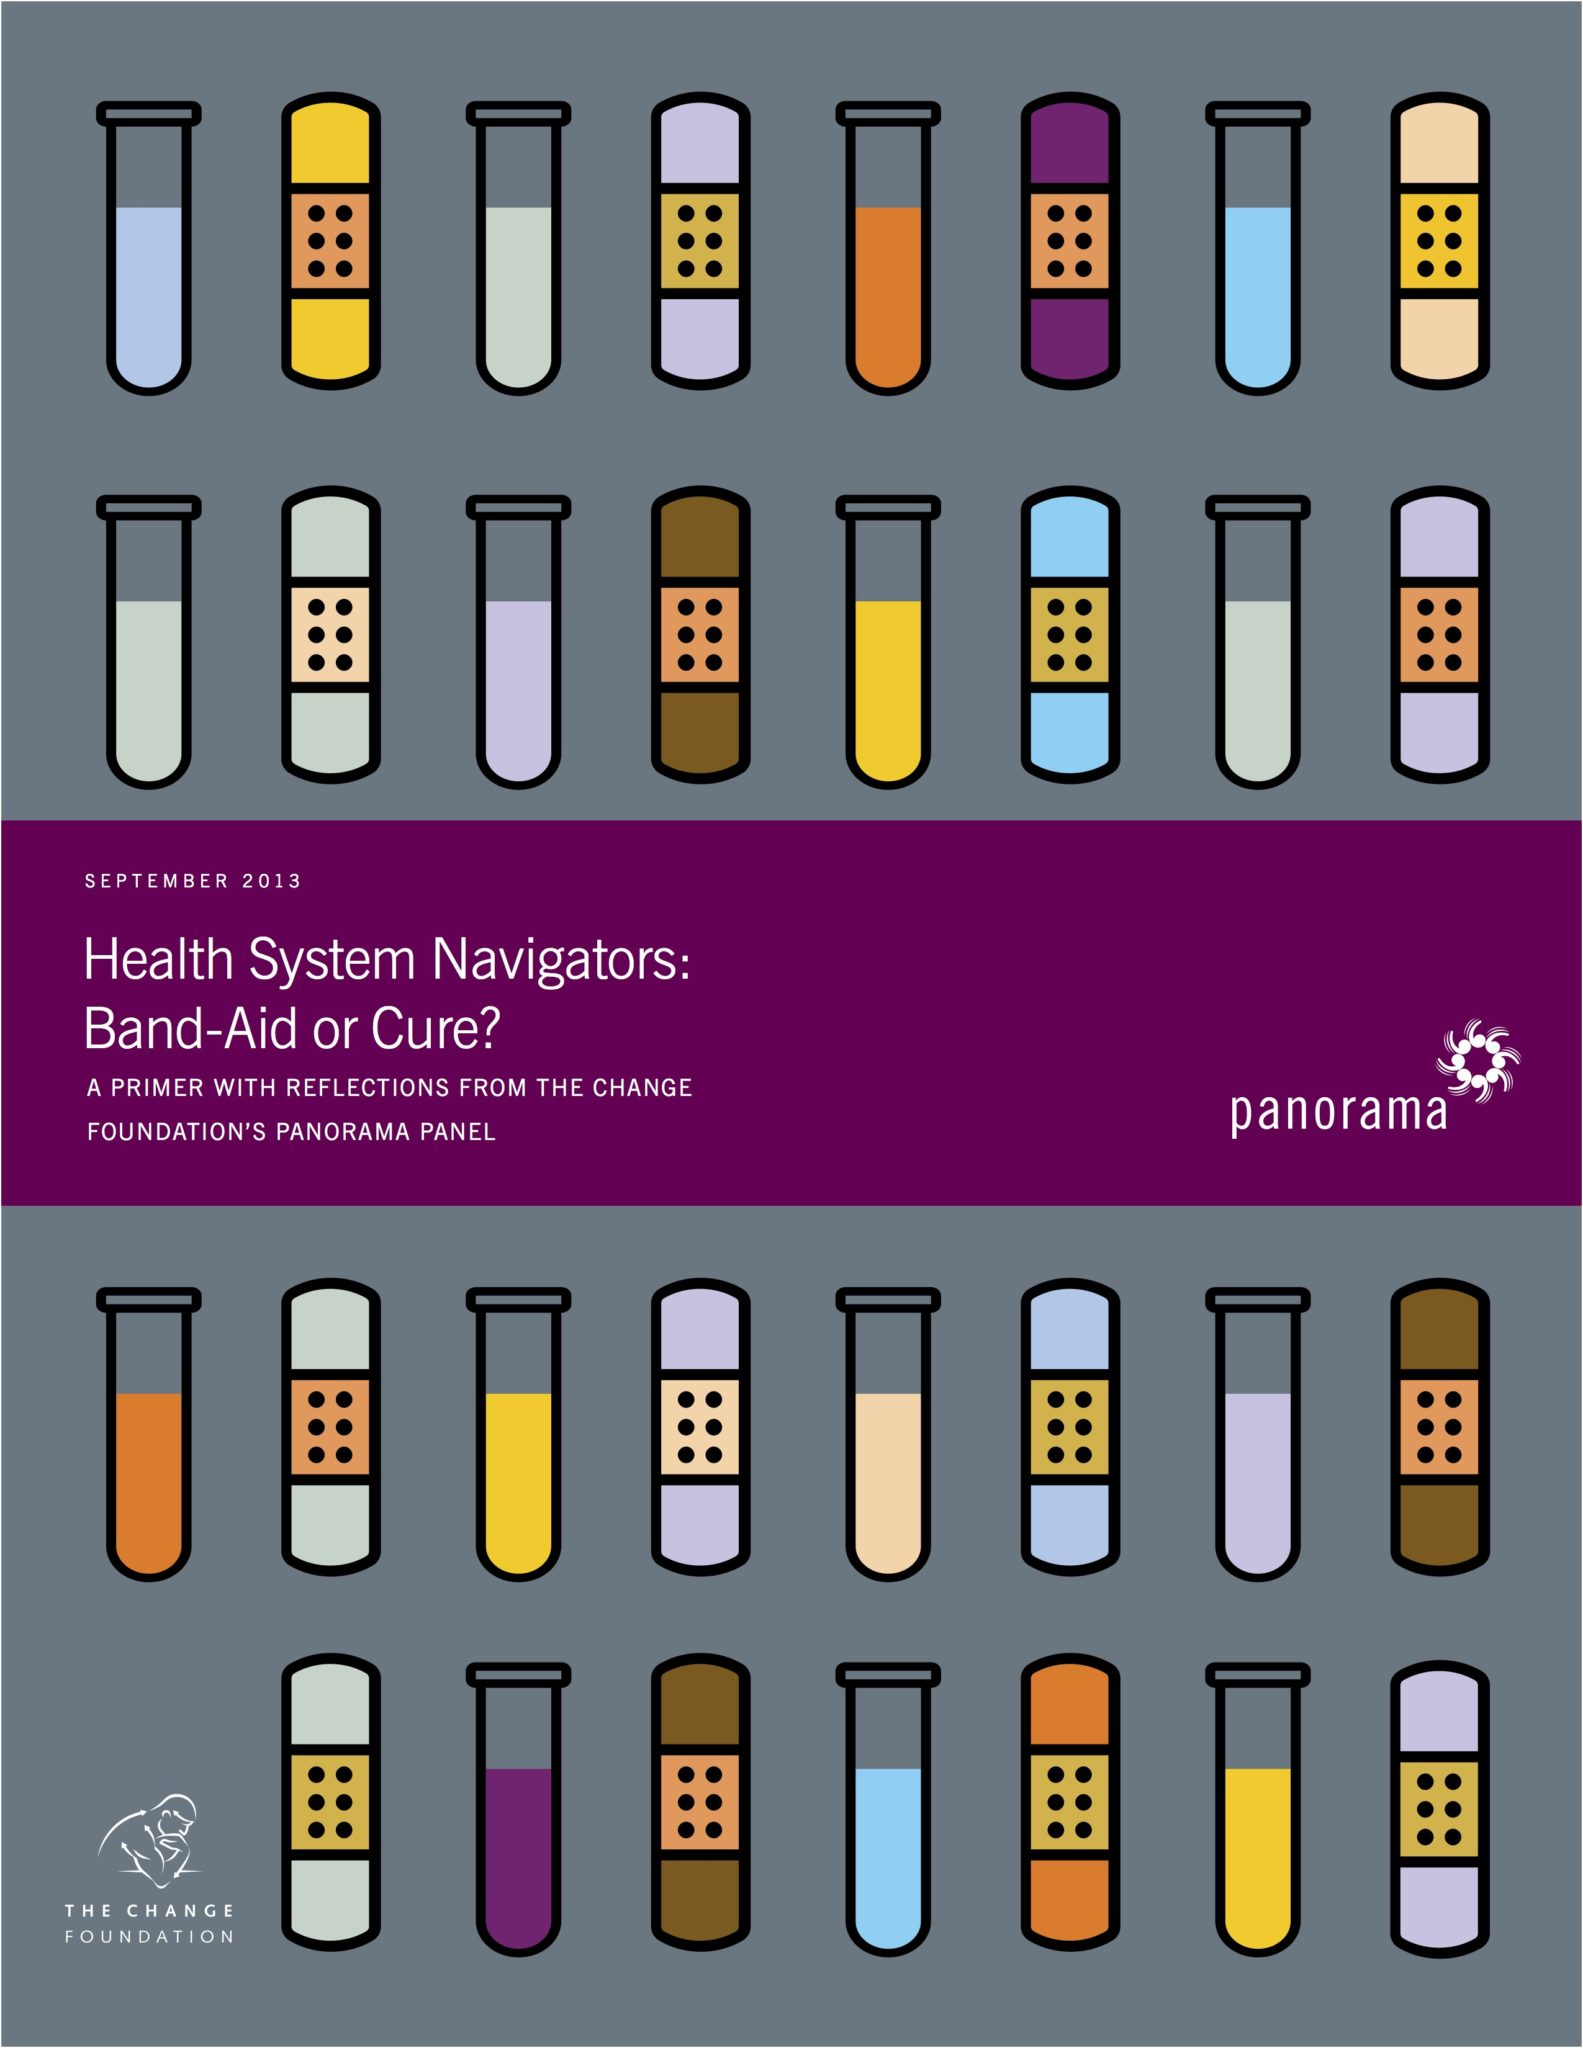 Report: Health System Navigators: Band-Aid or Cure?